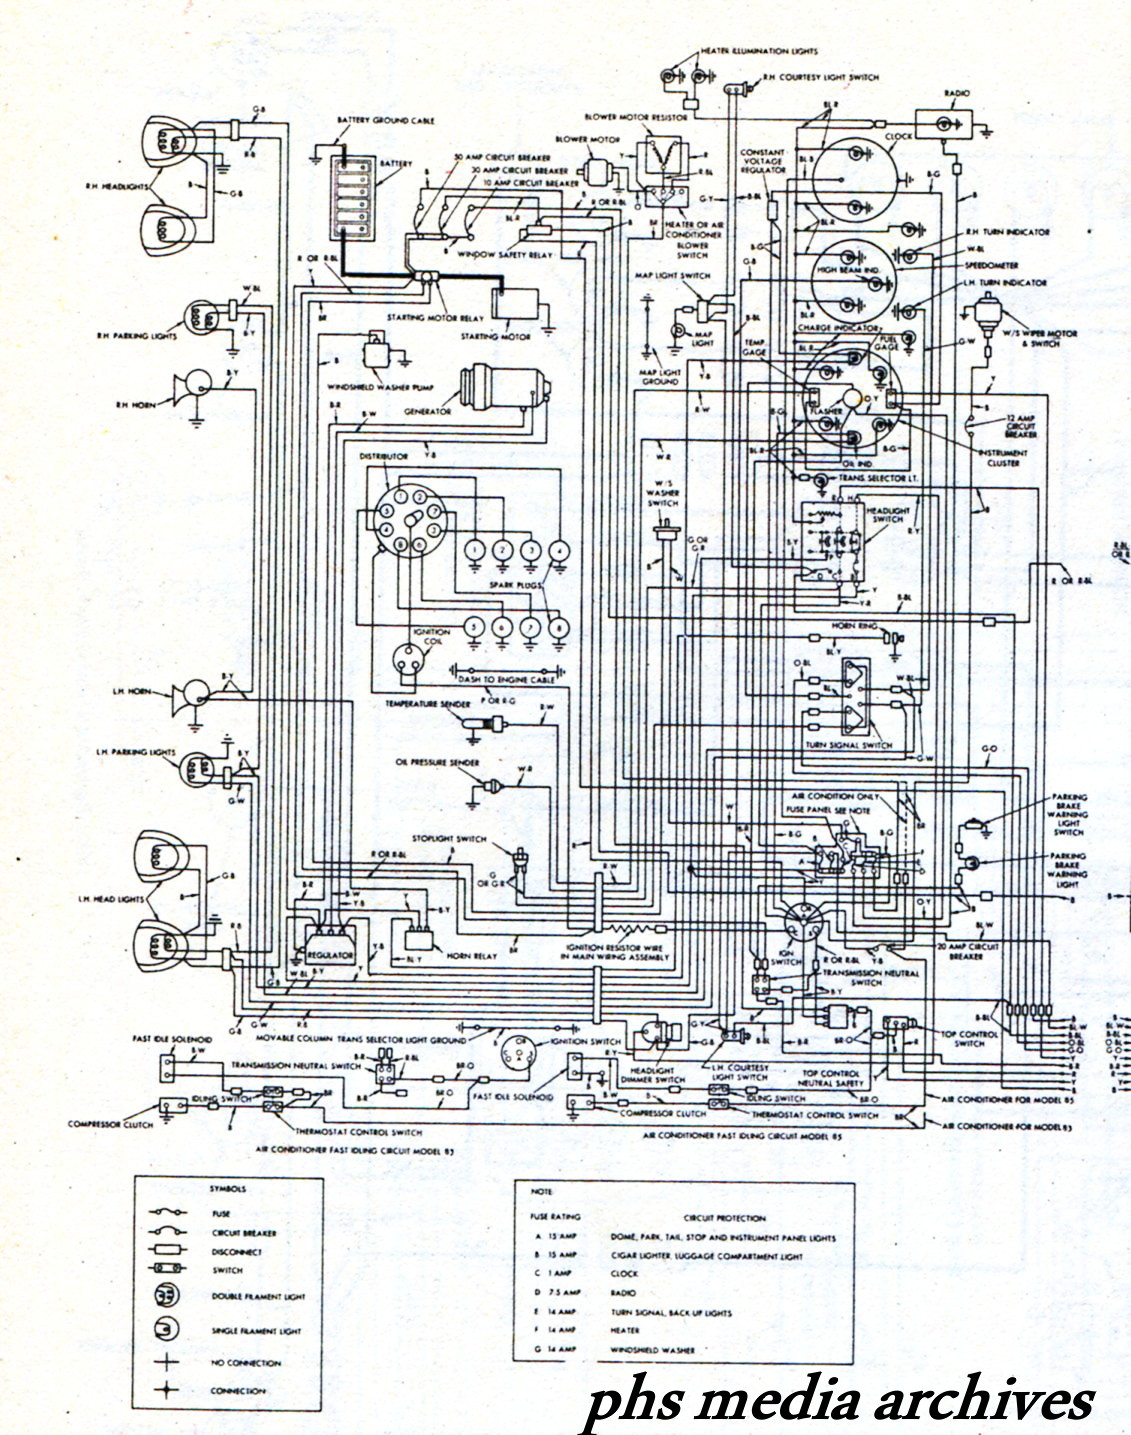 hight resolution of 1963 pontiac wiring chart rh thepeoplestrust co uk 1963 pontiac bonneville wiring diagram 1963 pontiac grand prix wiring diagram